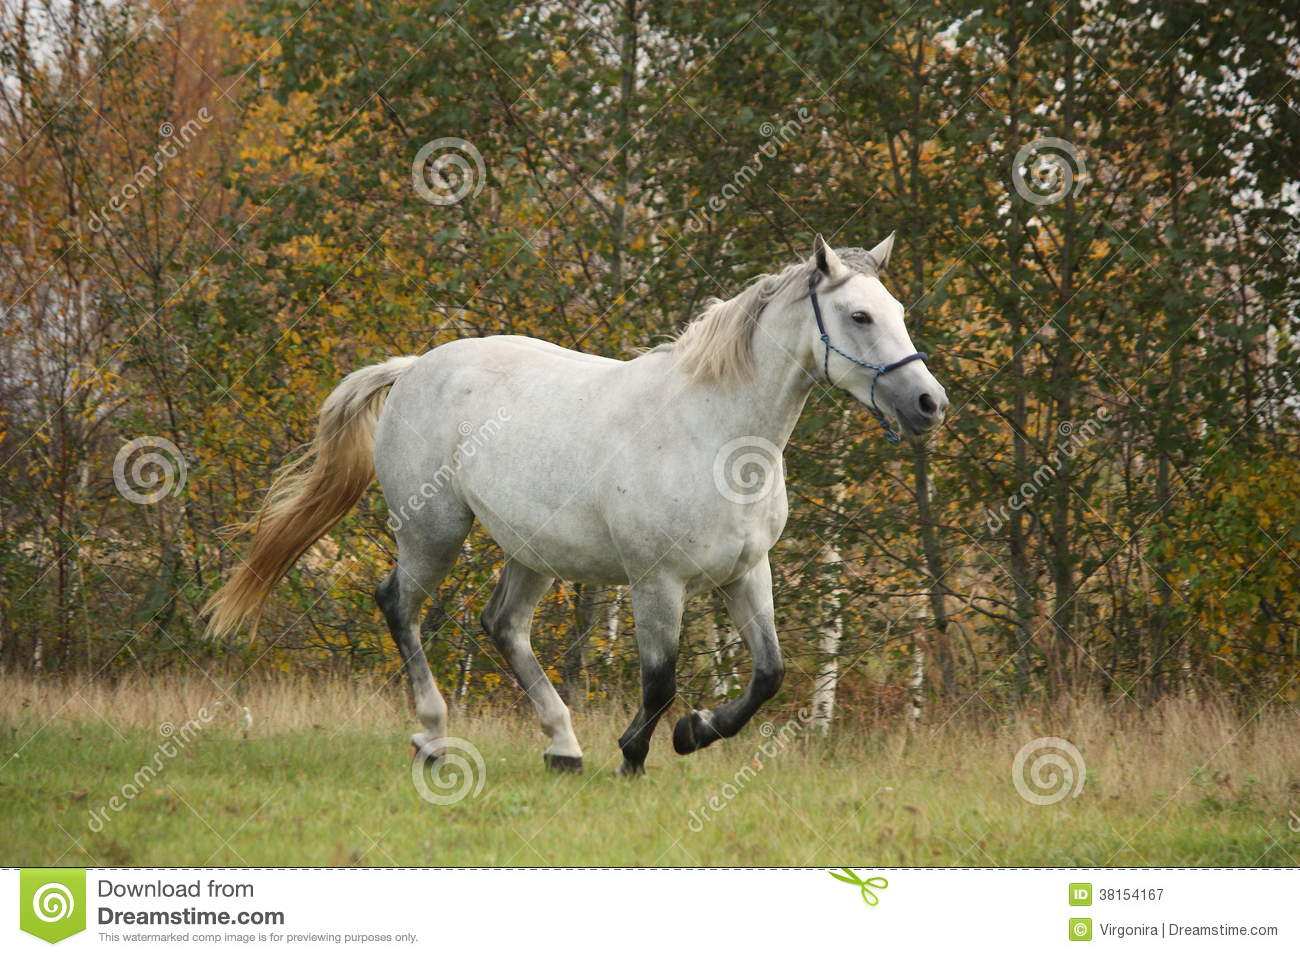 Galloping white horse - photo#15